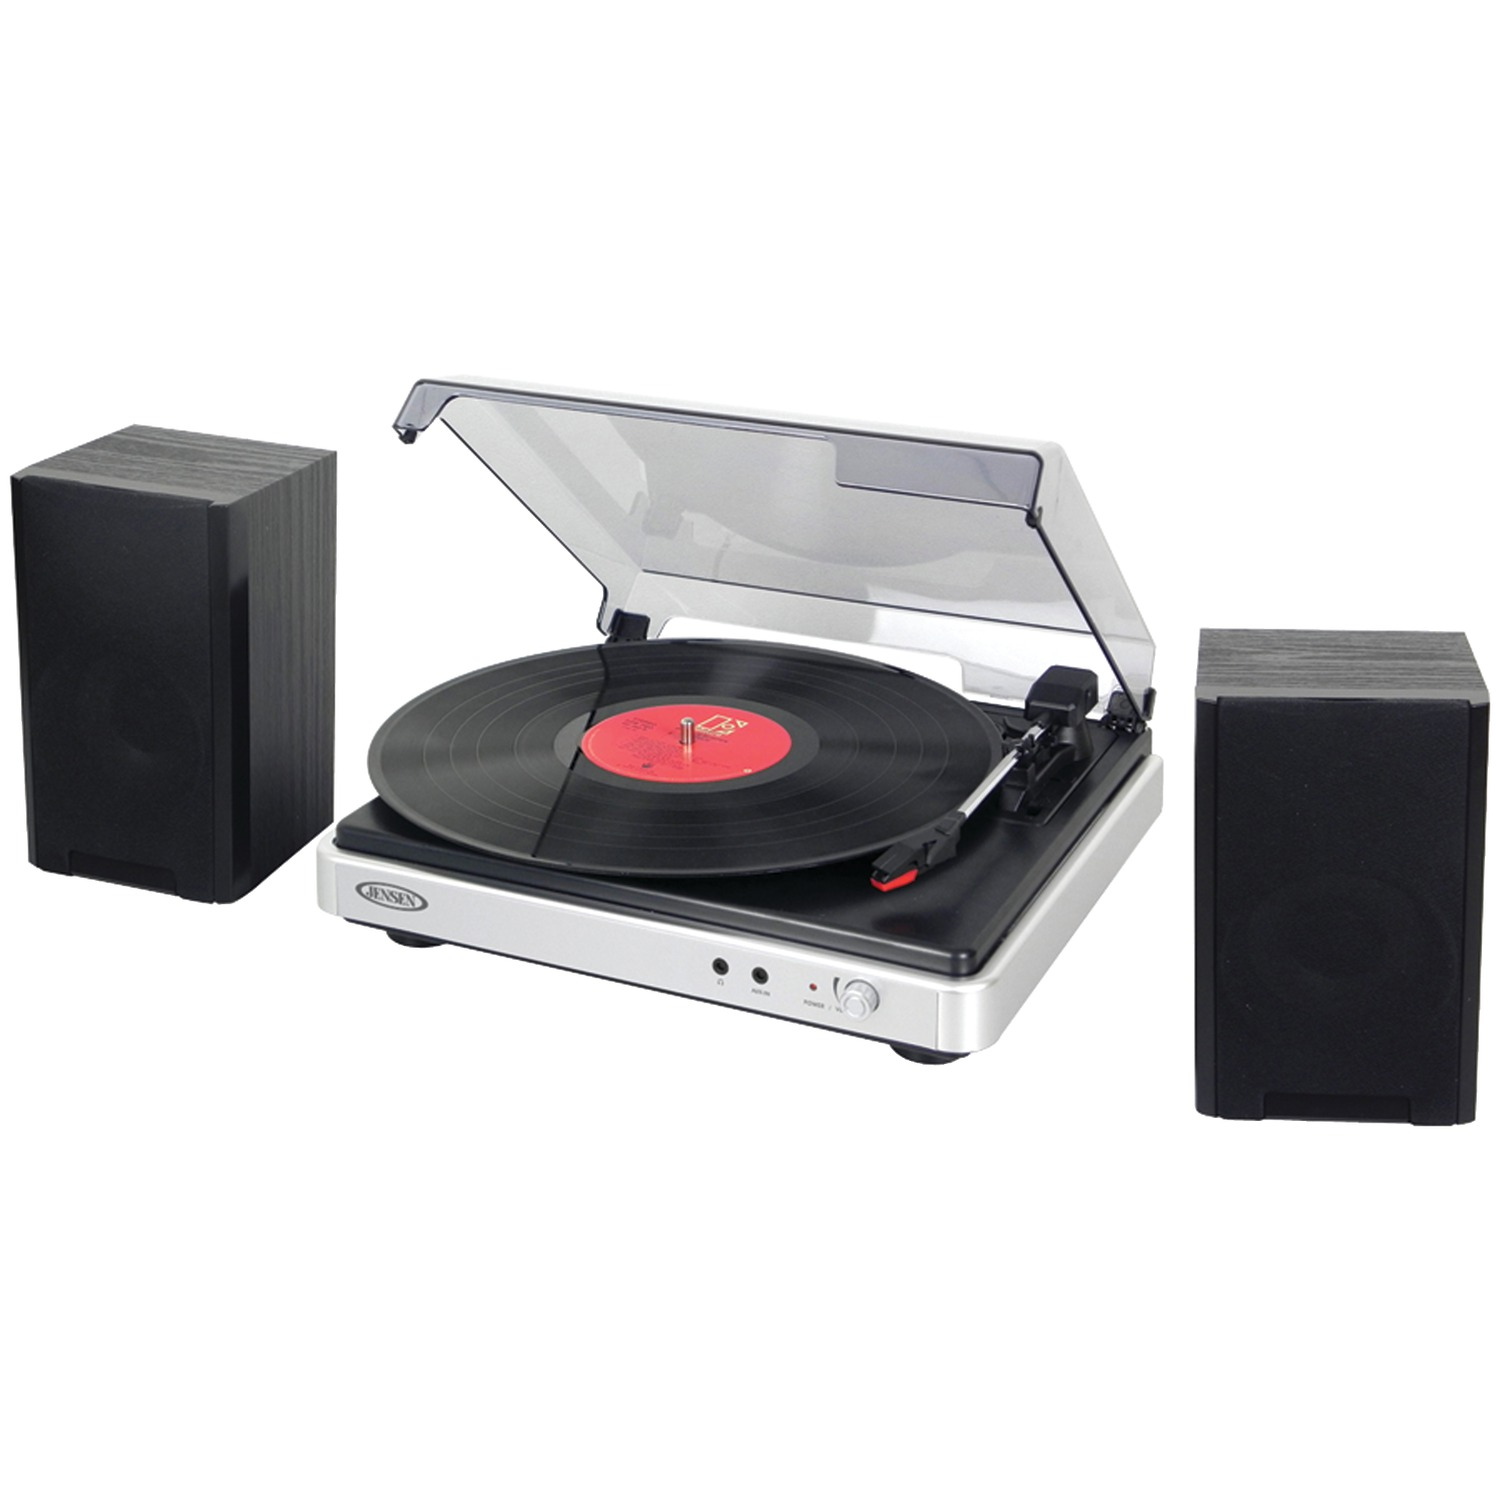 JENSEN JTA-325 3-Speed Turntable with Stereo Speakers